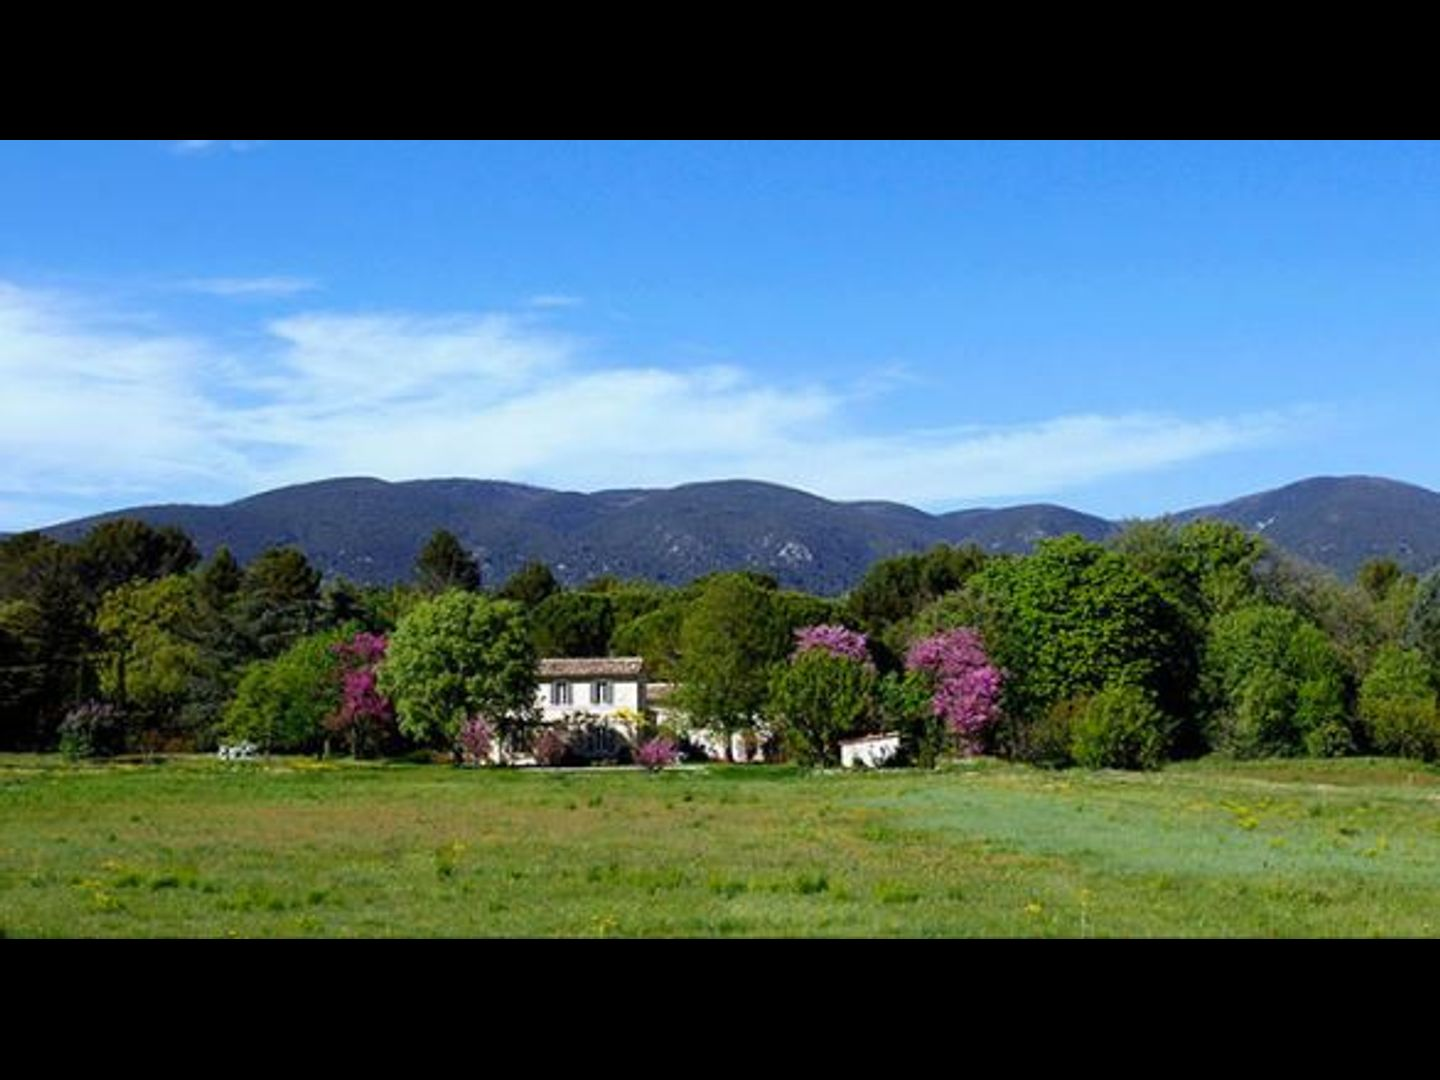 A large green field with trees in the background at Maison Collongue, maison bio et vintage en Luberon.